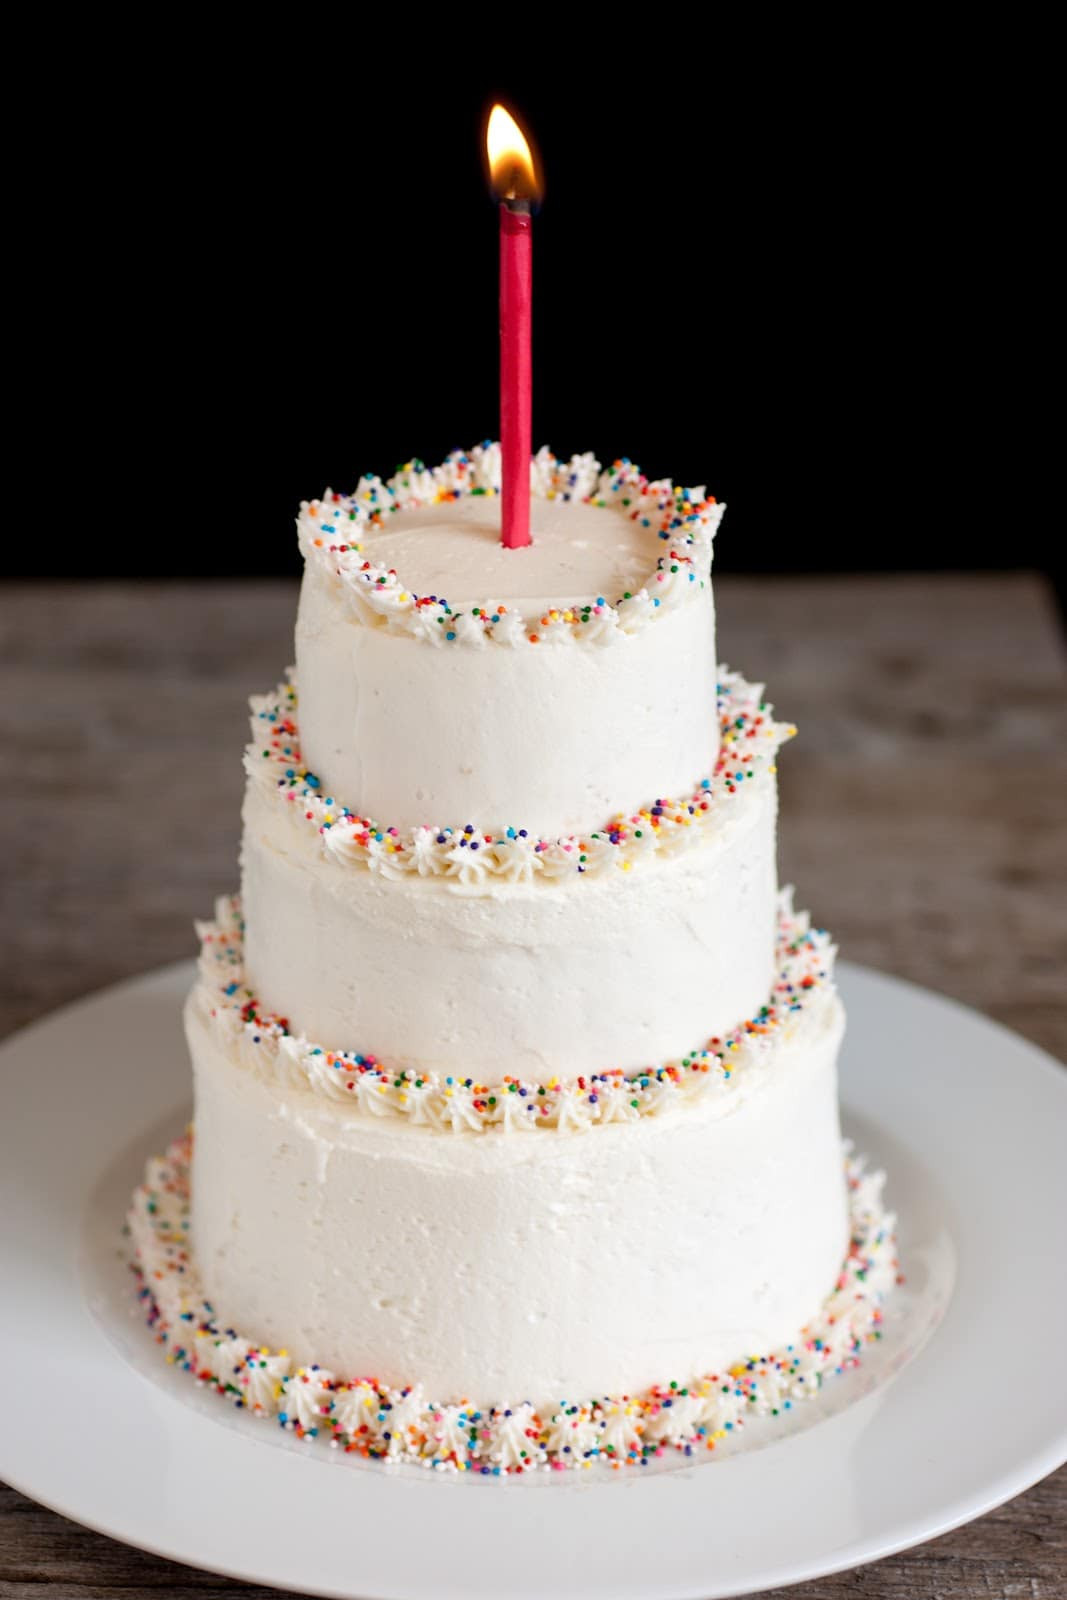 Best ideas about Two Tiered Birthday Cake . Save or Pin Buttercream Frosting Ultimate Icing on the Cake Now.